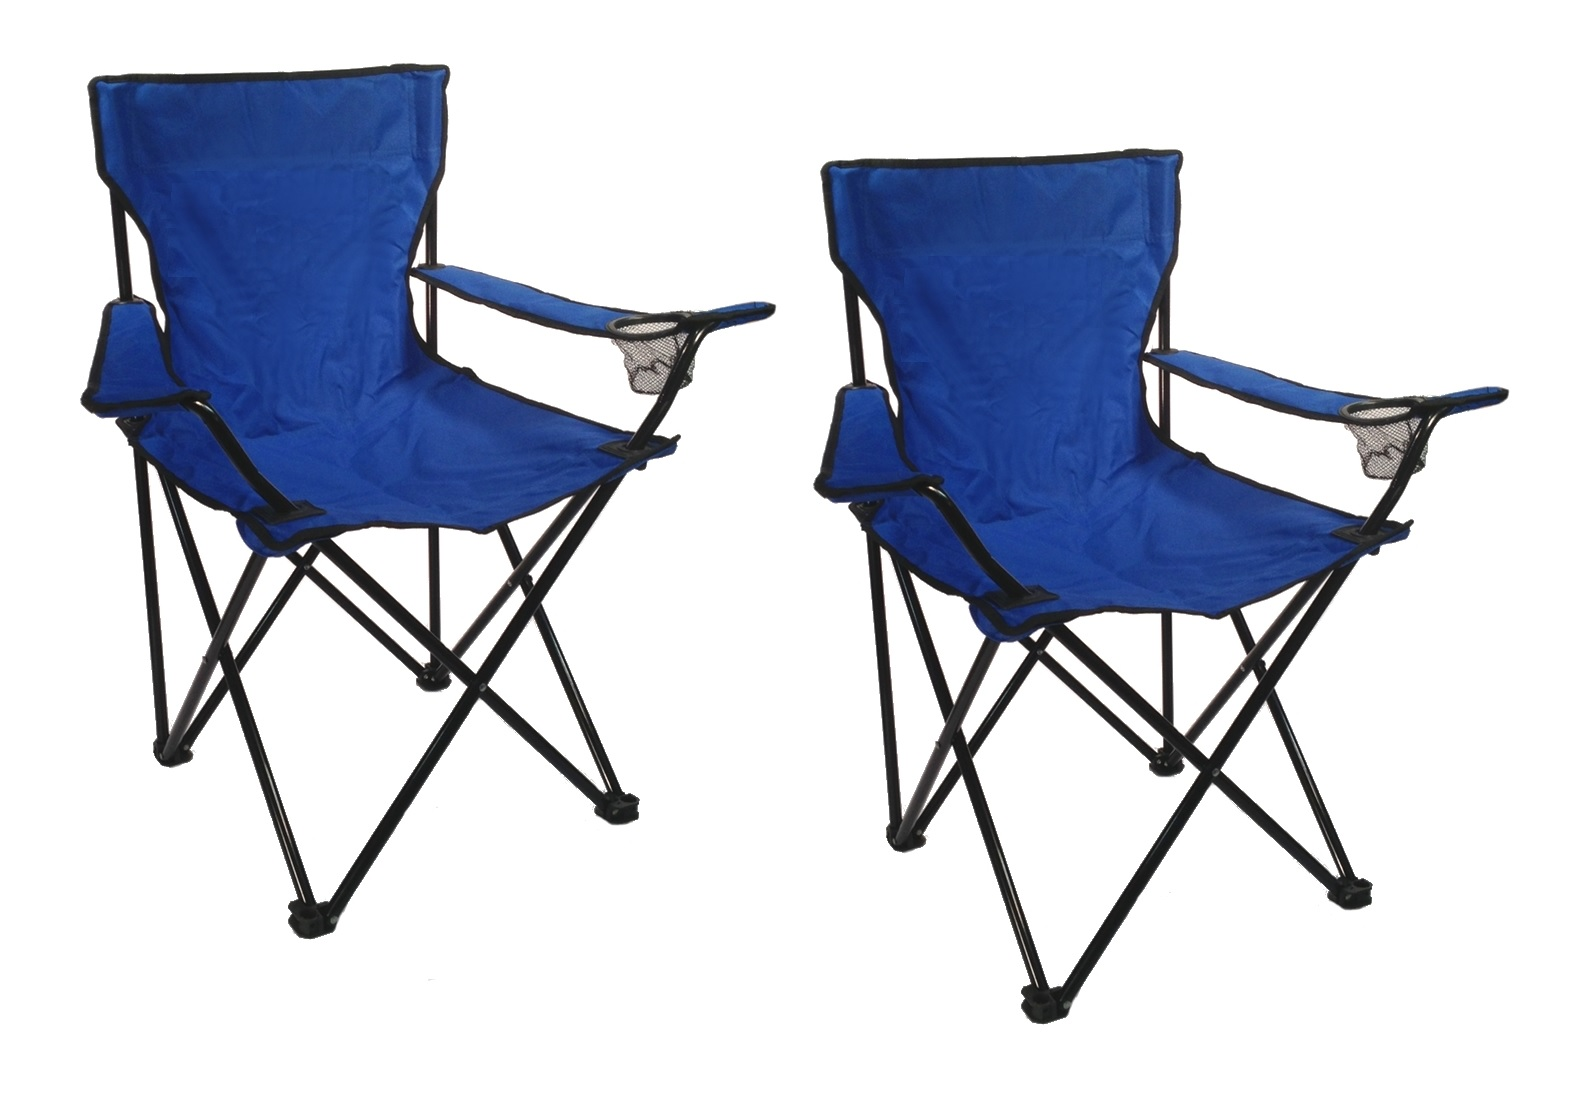 Tailgating Chairs Set Of 2 Folding Camp Chairs W Bags Fishing Beach